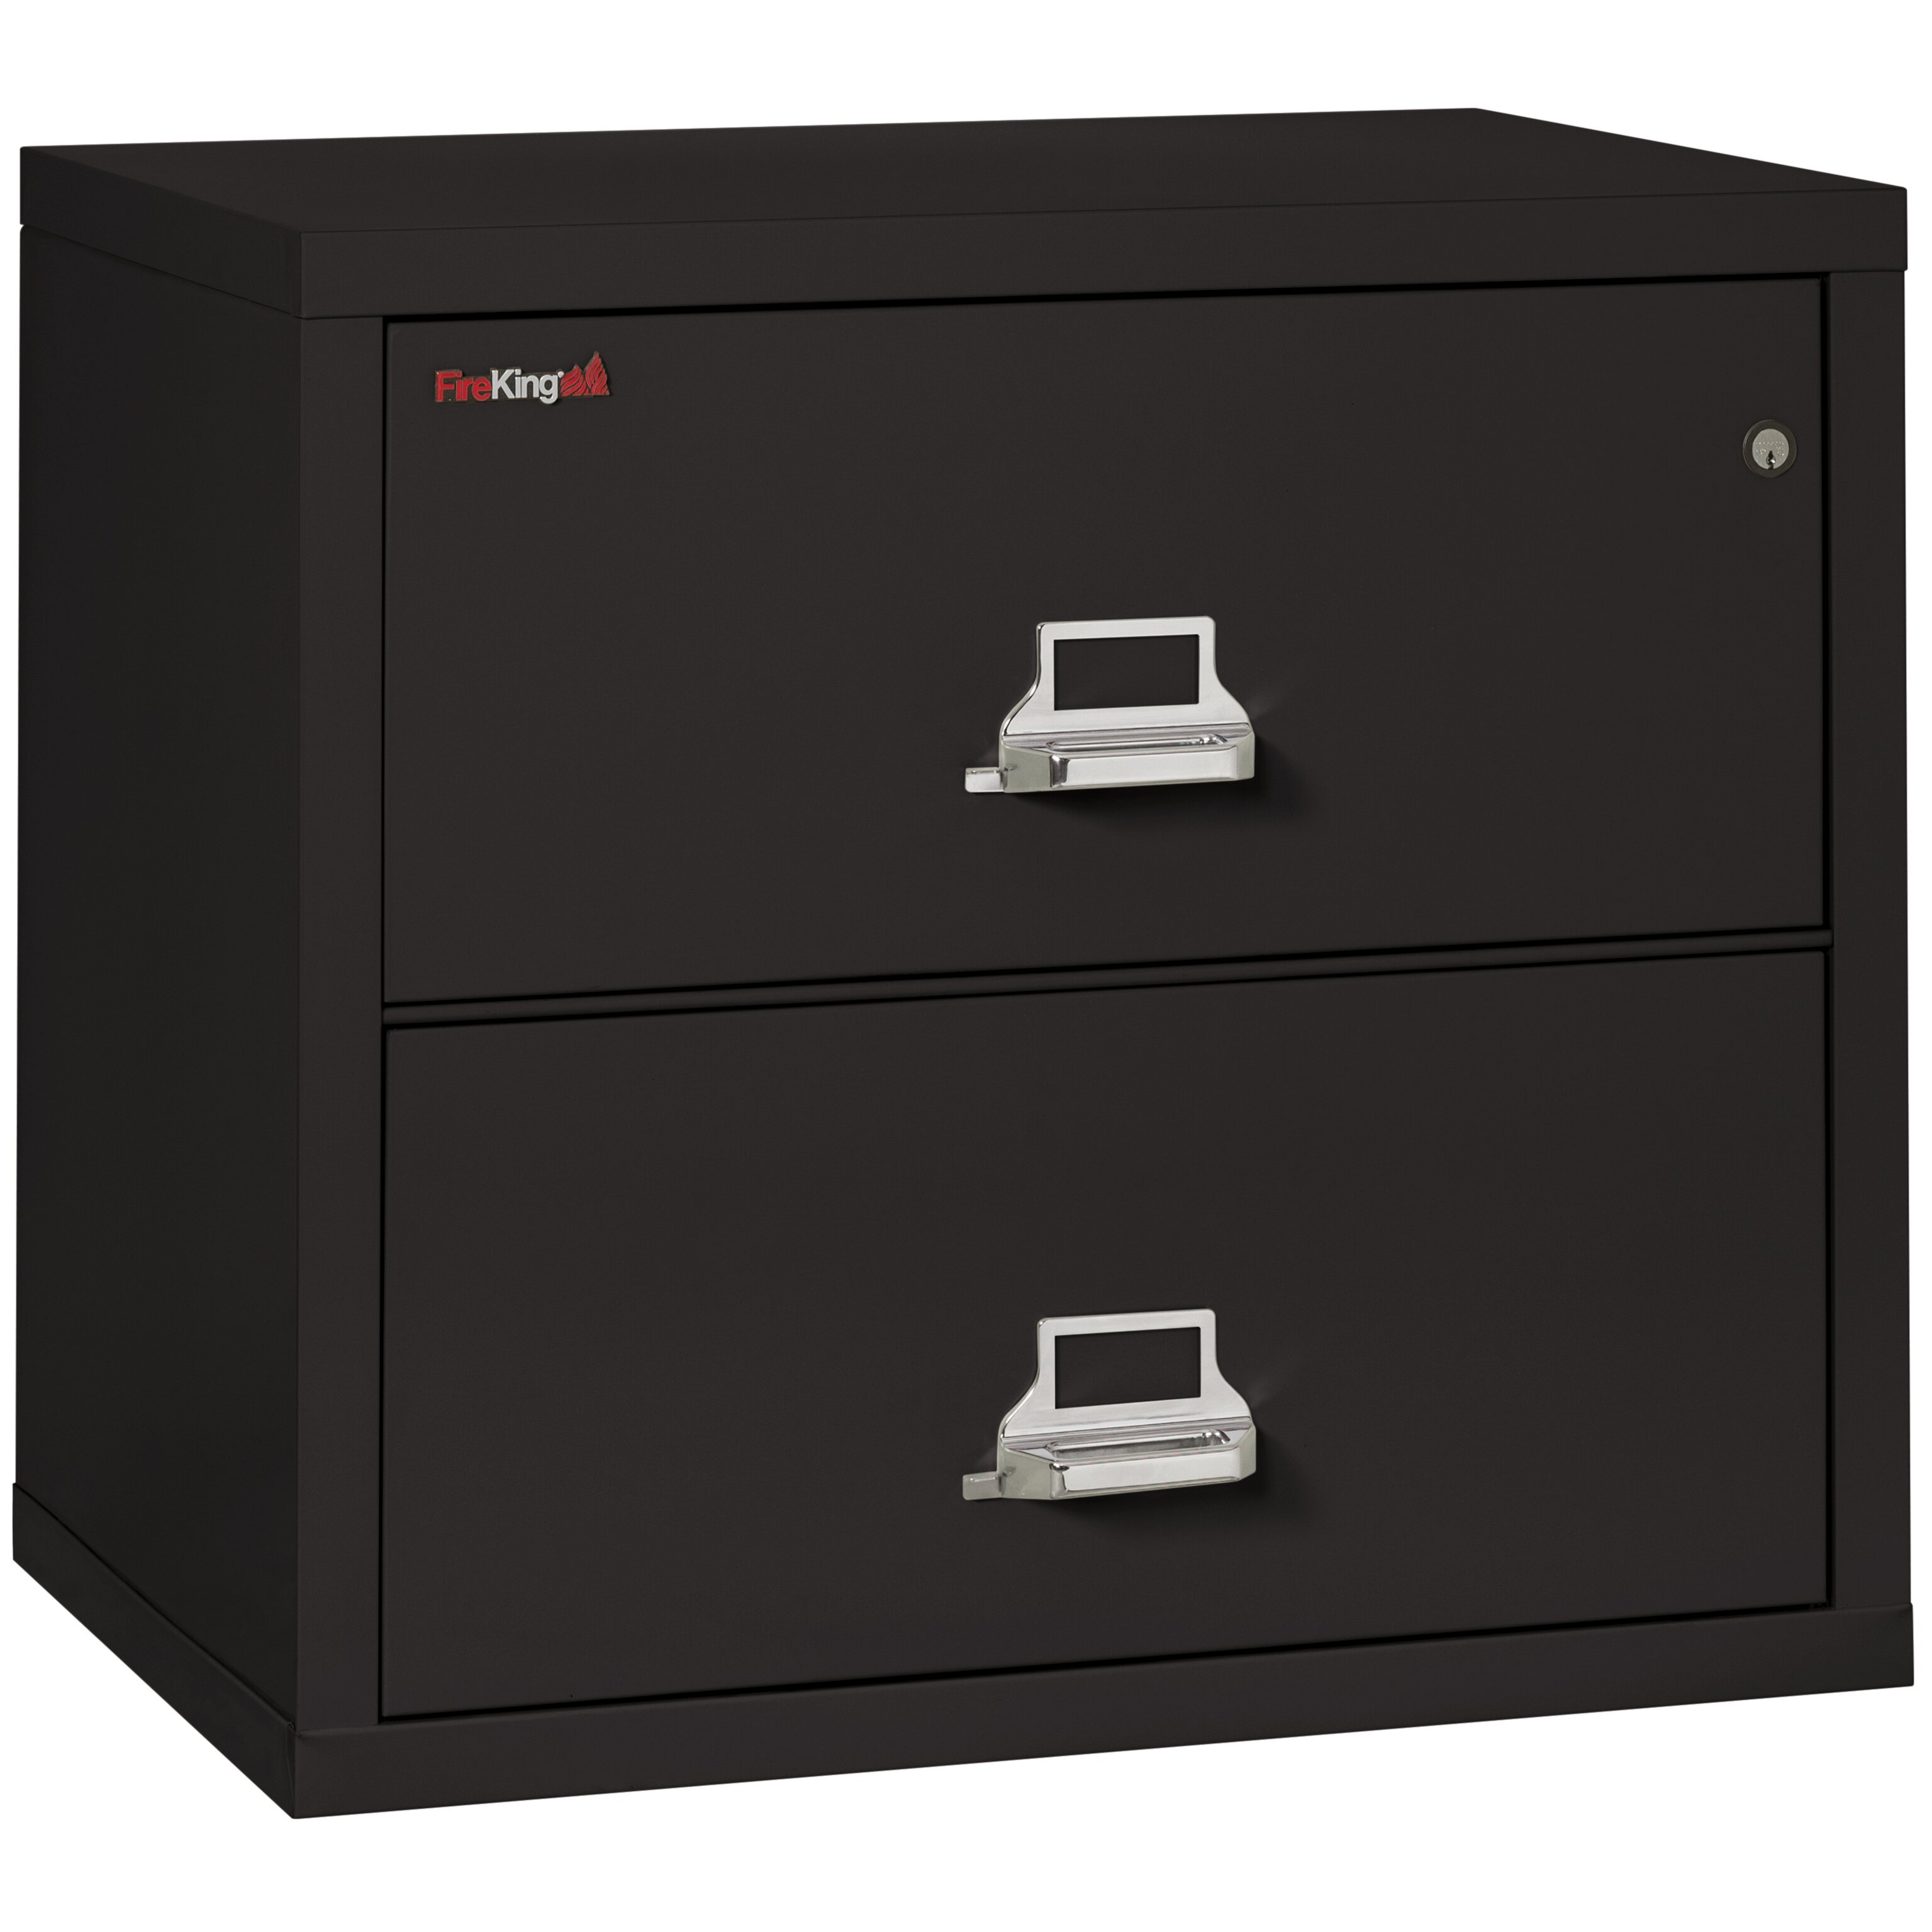 fire proof file cabinet fireking fireproof 2 drawer lateral file cabinet amp reviews 15437